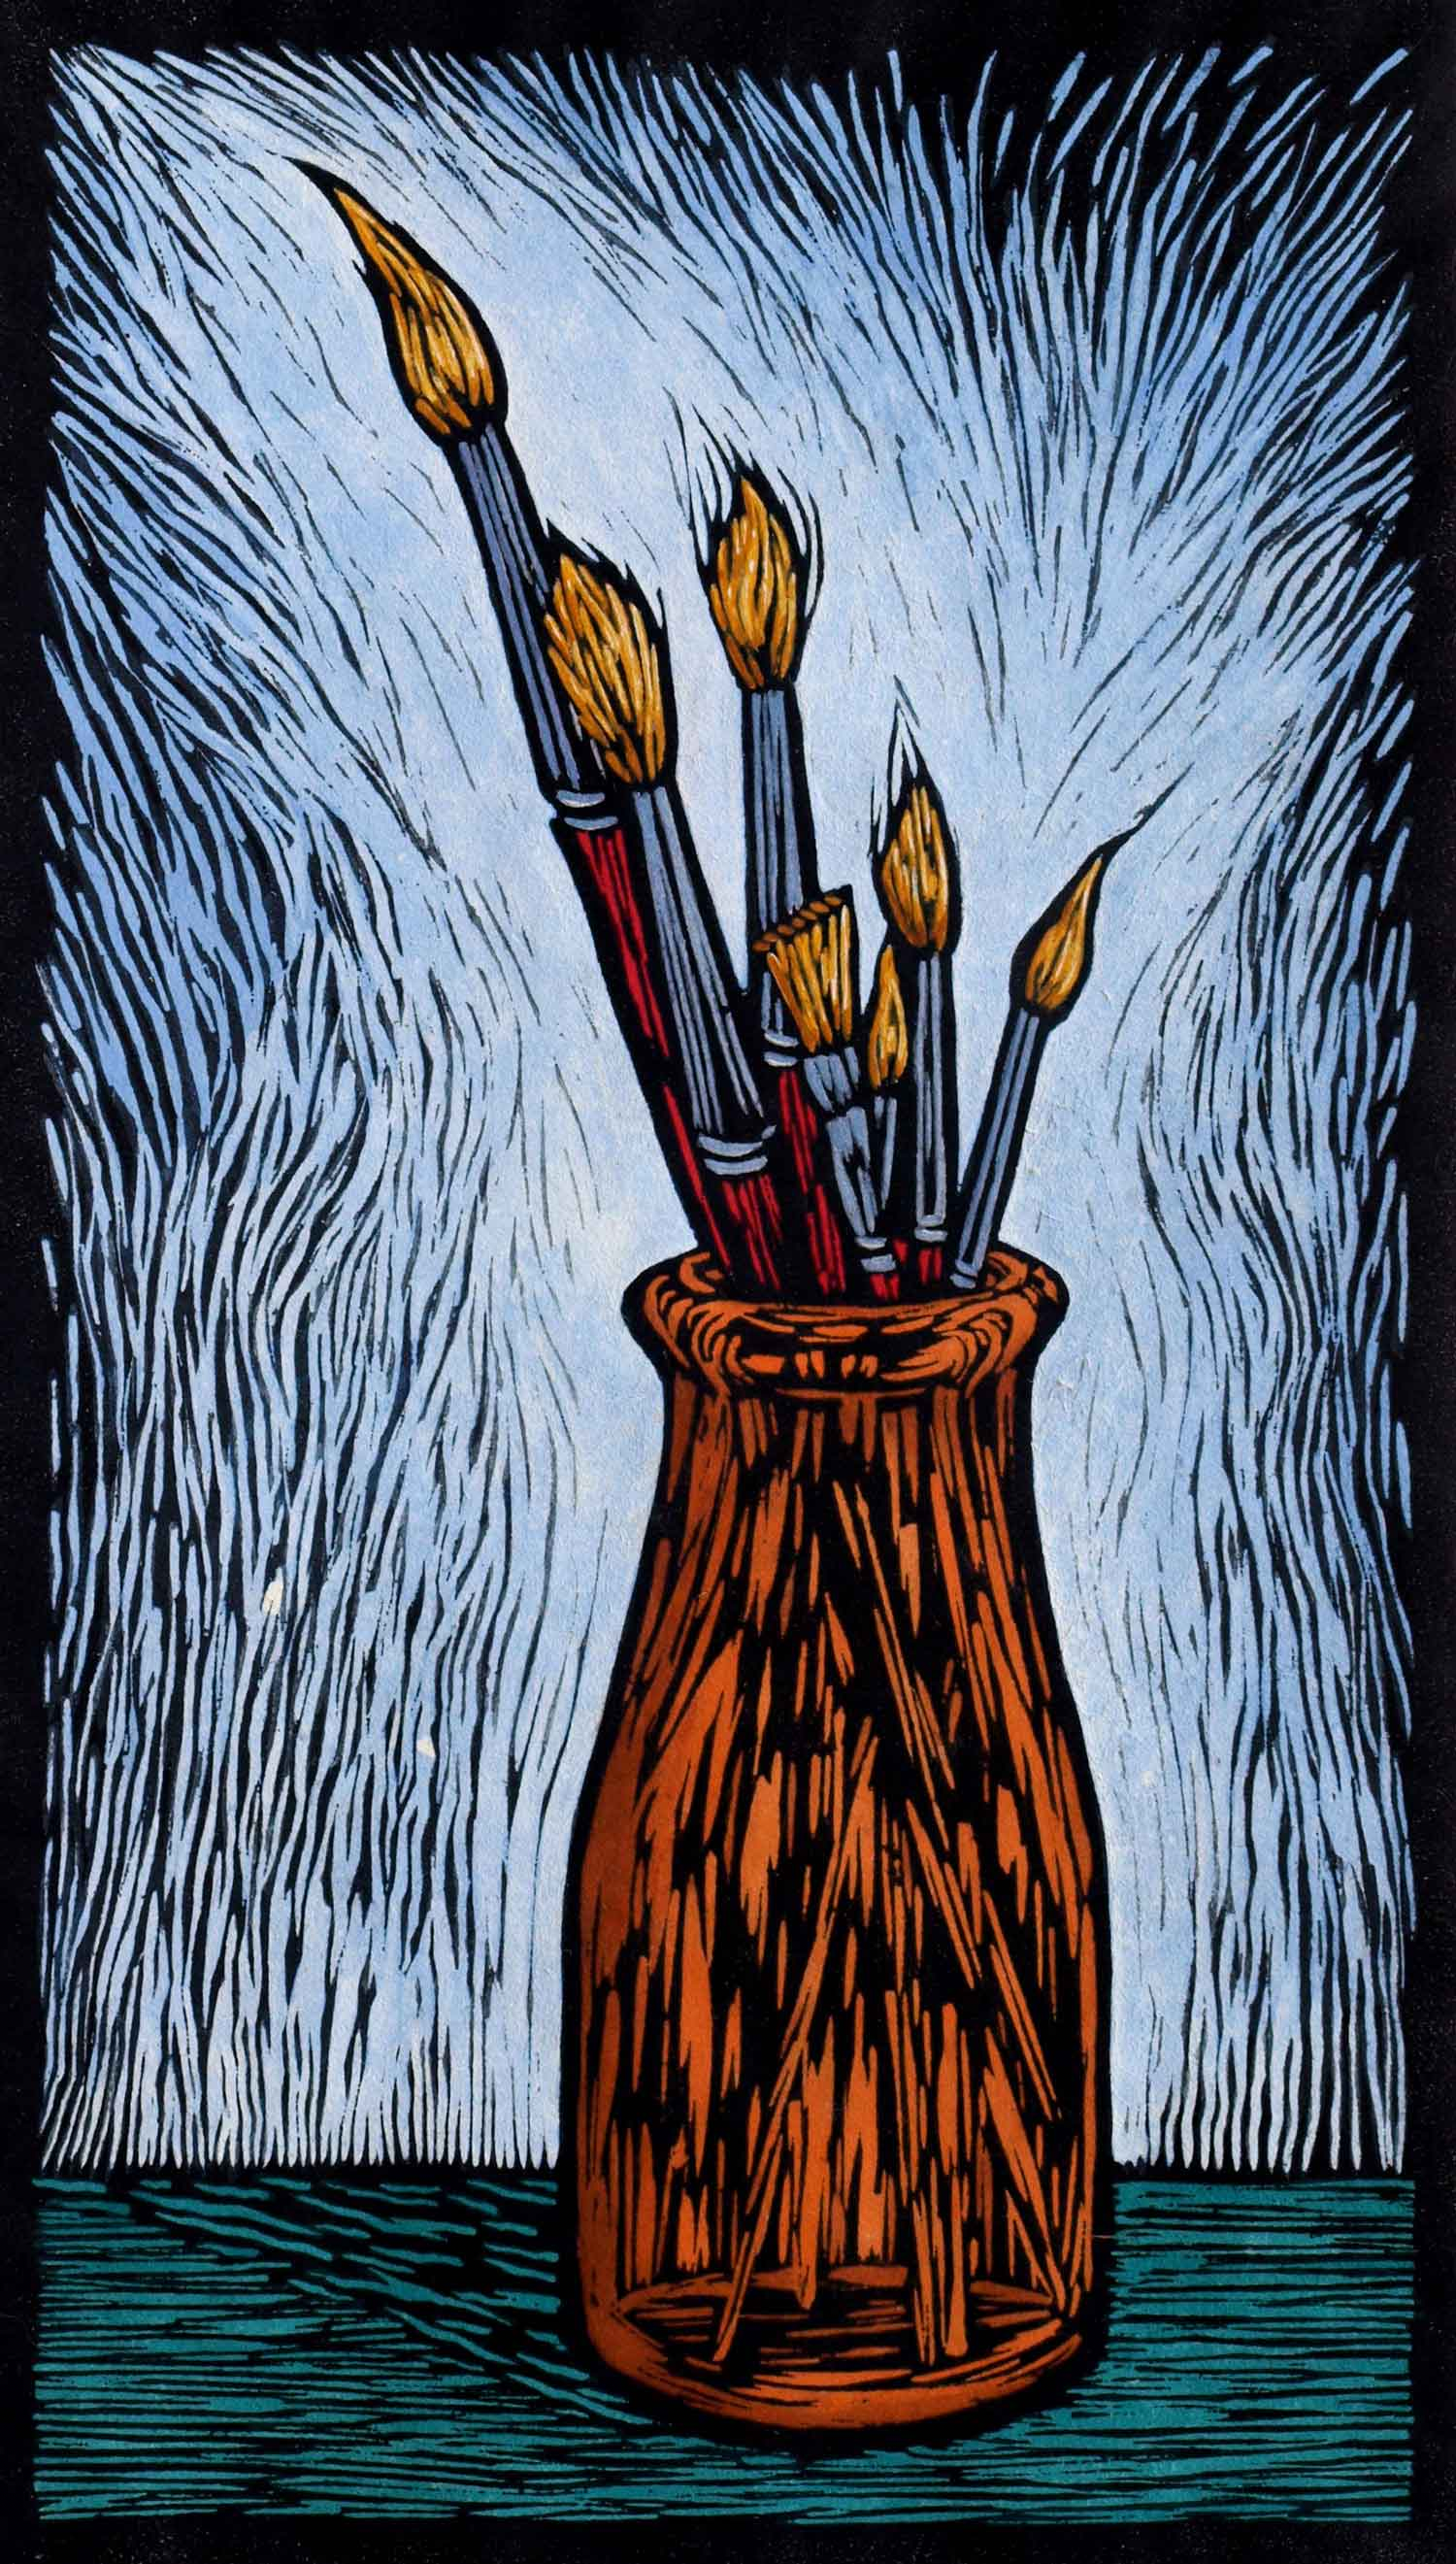 PAINT BRUSHES  35 X 19.5 CM EDITION OF 50  HAND COLOURED LINOCUT ON HANDMADE JAPANESE PAPER  $650